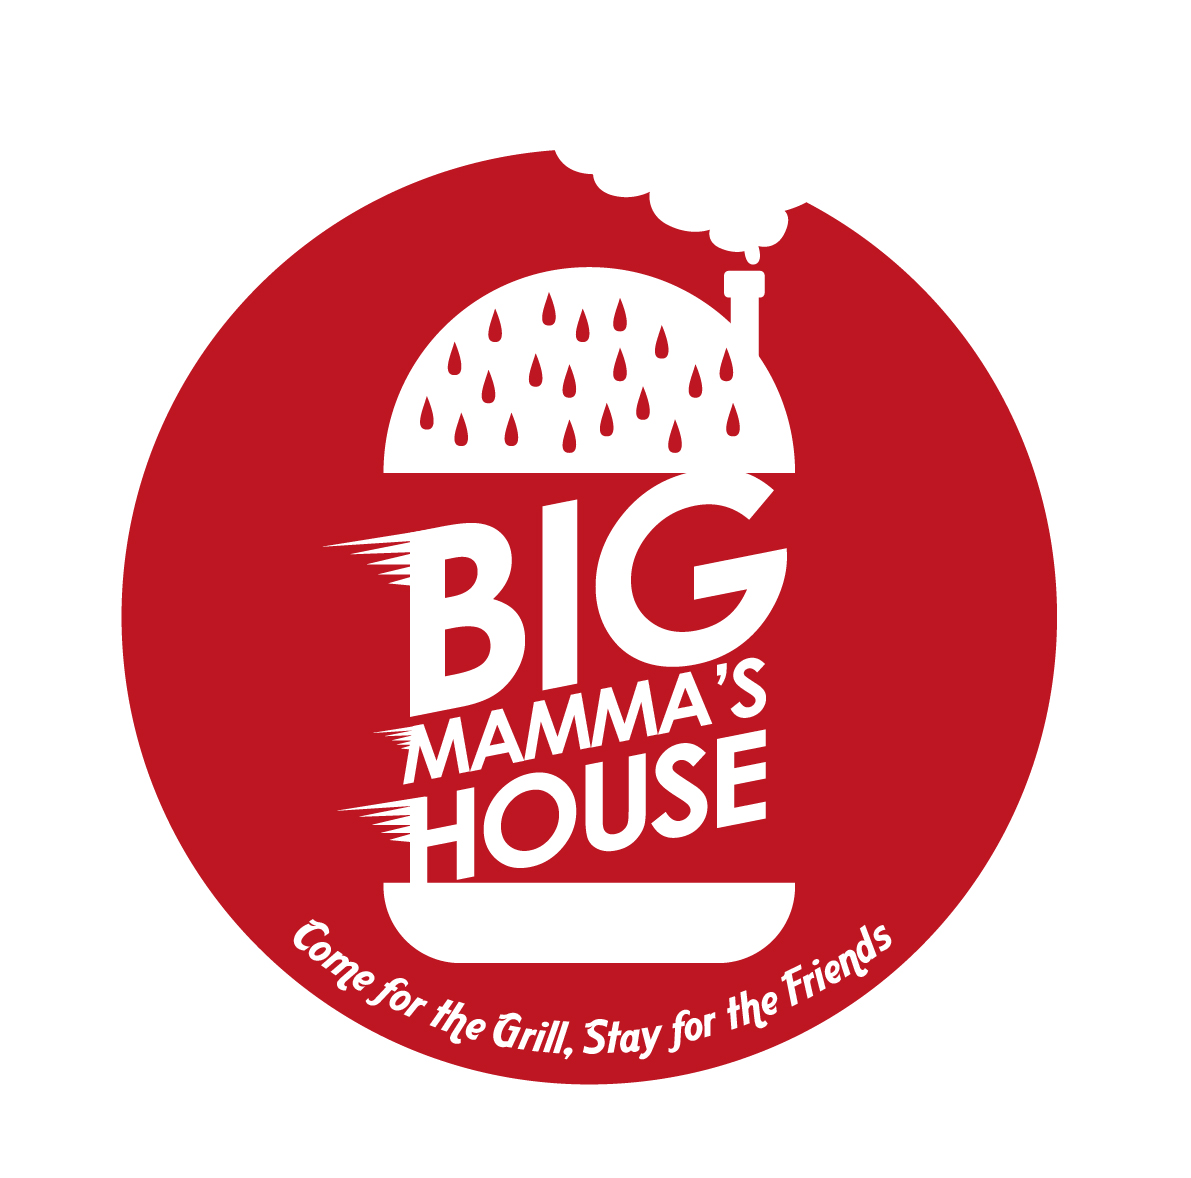 Logo Design by Ndaru Ap - Entry No. 9 in the Logo Design Contest Captivating Logo Design for Big Mamma's House.